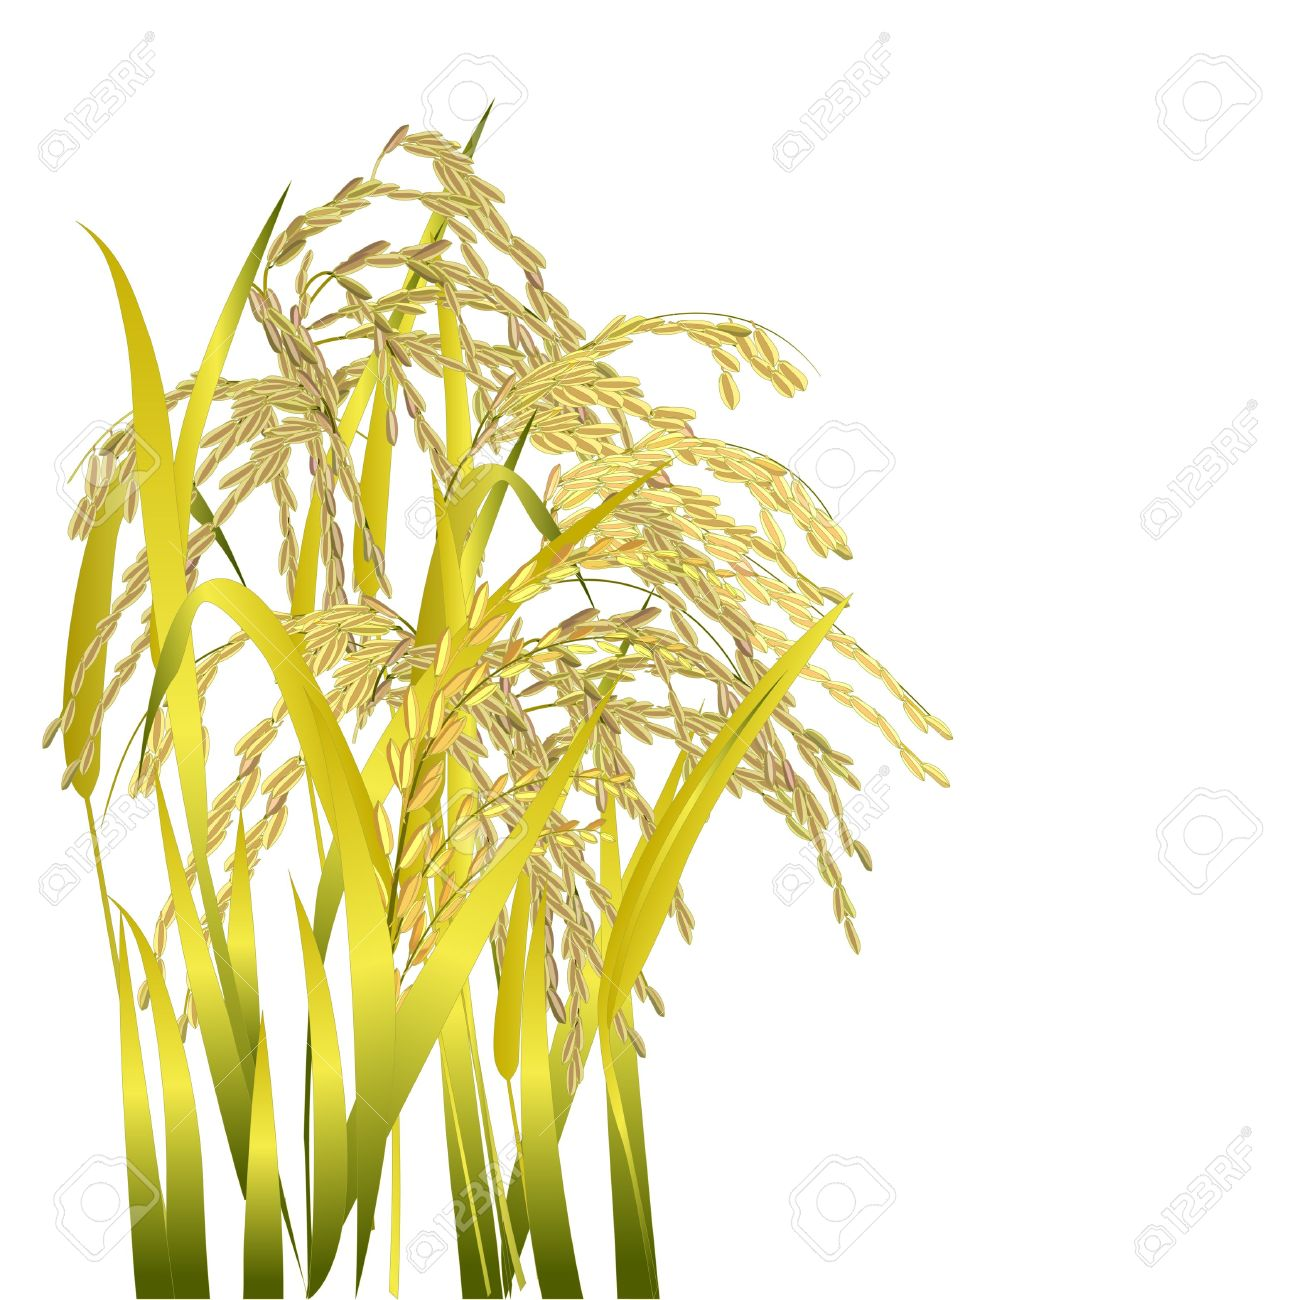 Clipart rice grains.